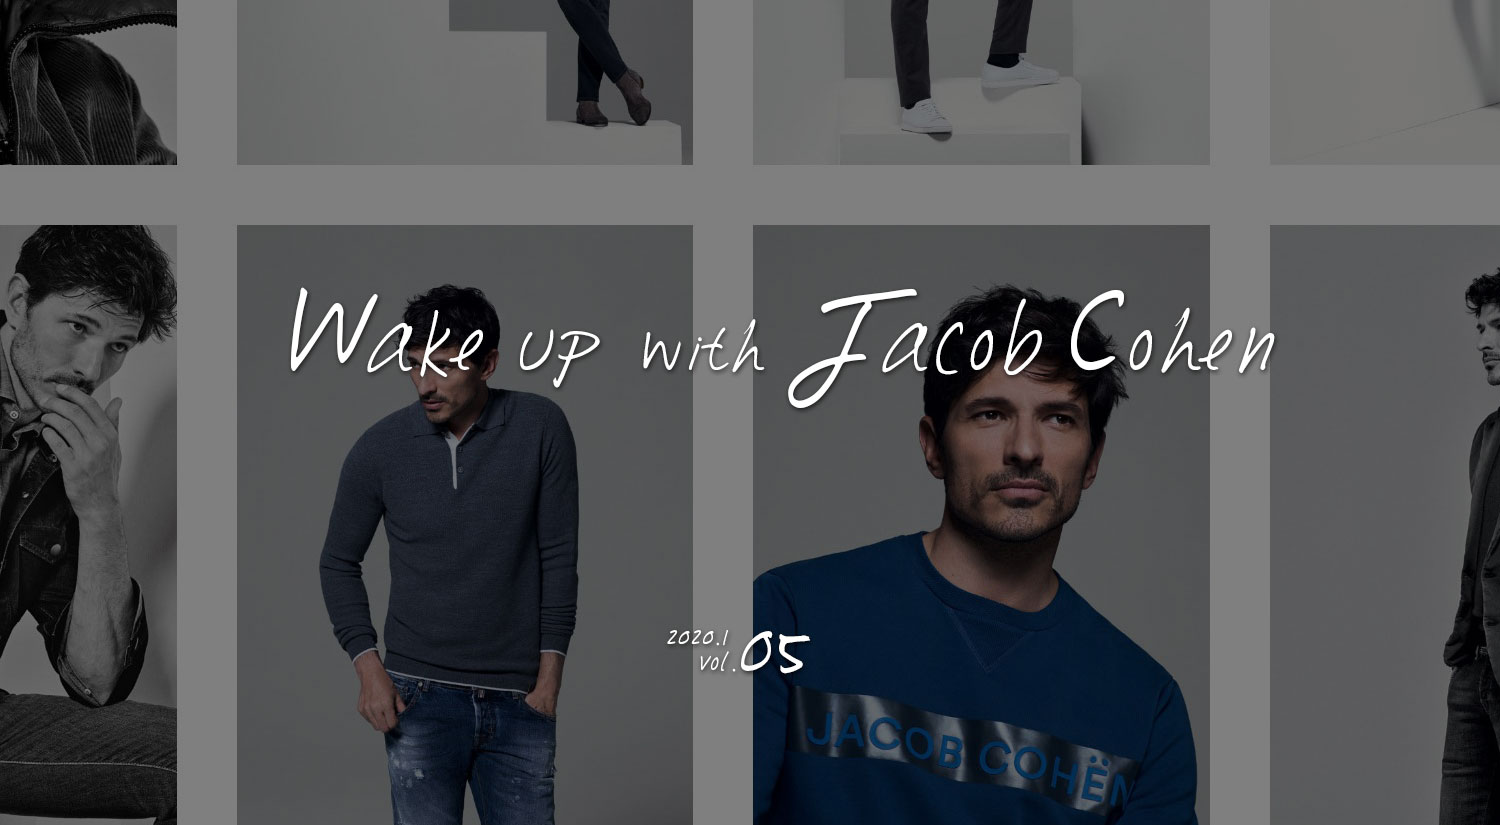 Wake up with Jacob cohen Vol.05